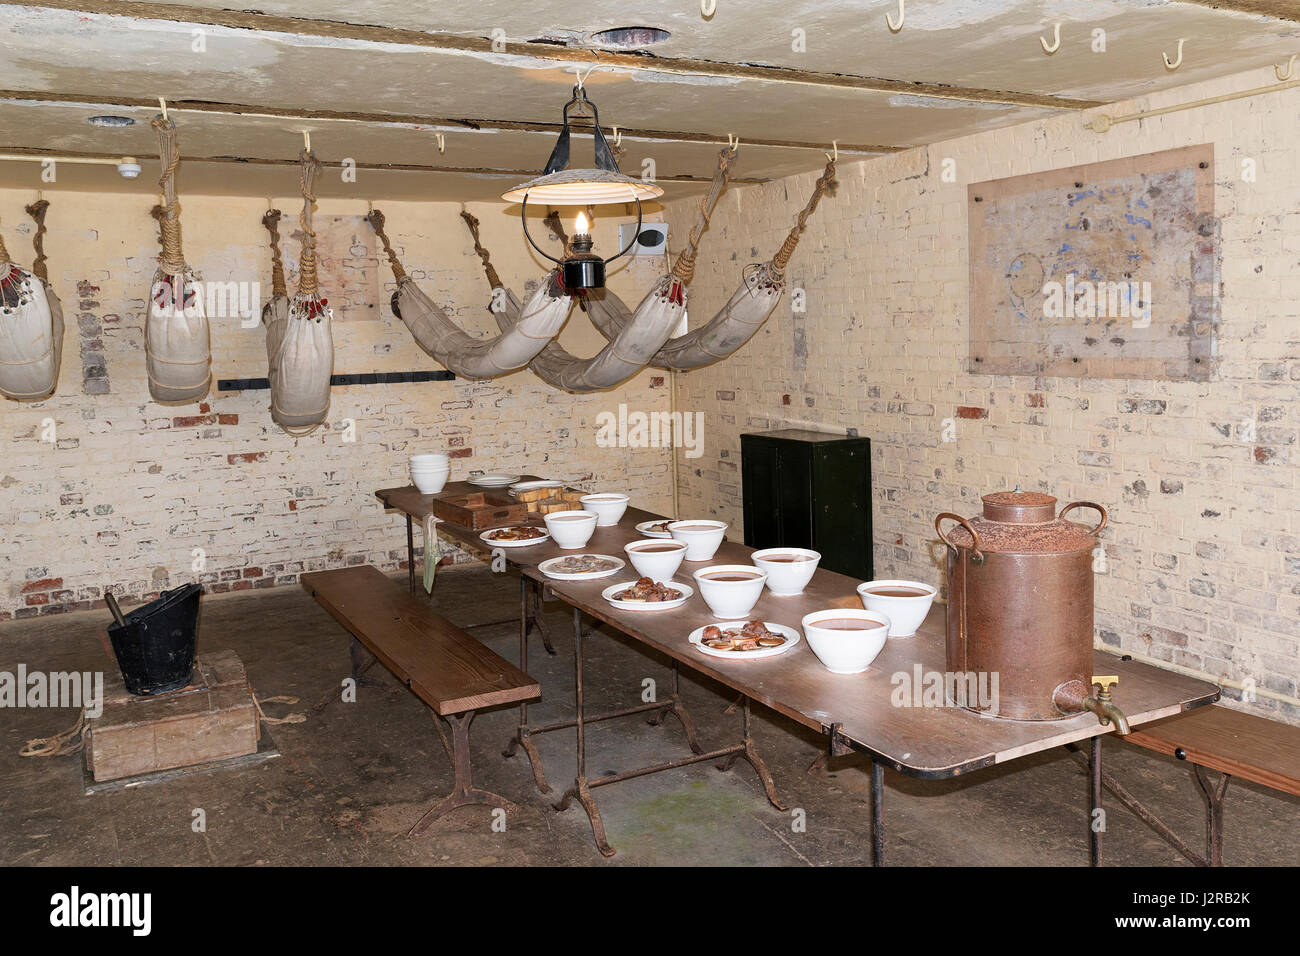 world war two barracks room at pendennis castle in falmouth, cornwall,england, uk. - Stock Image